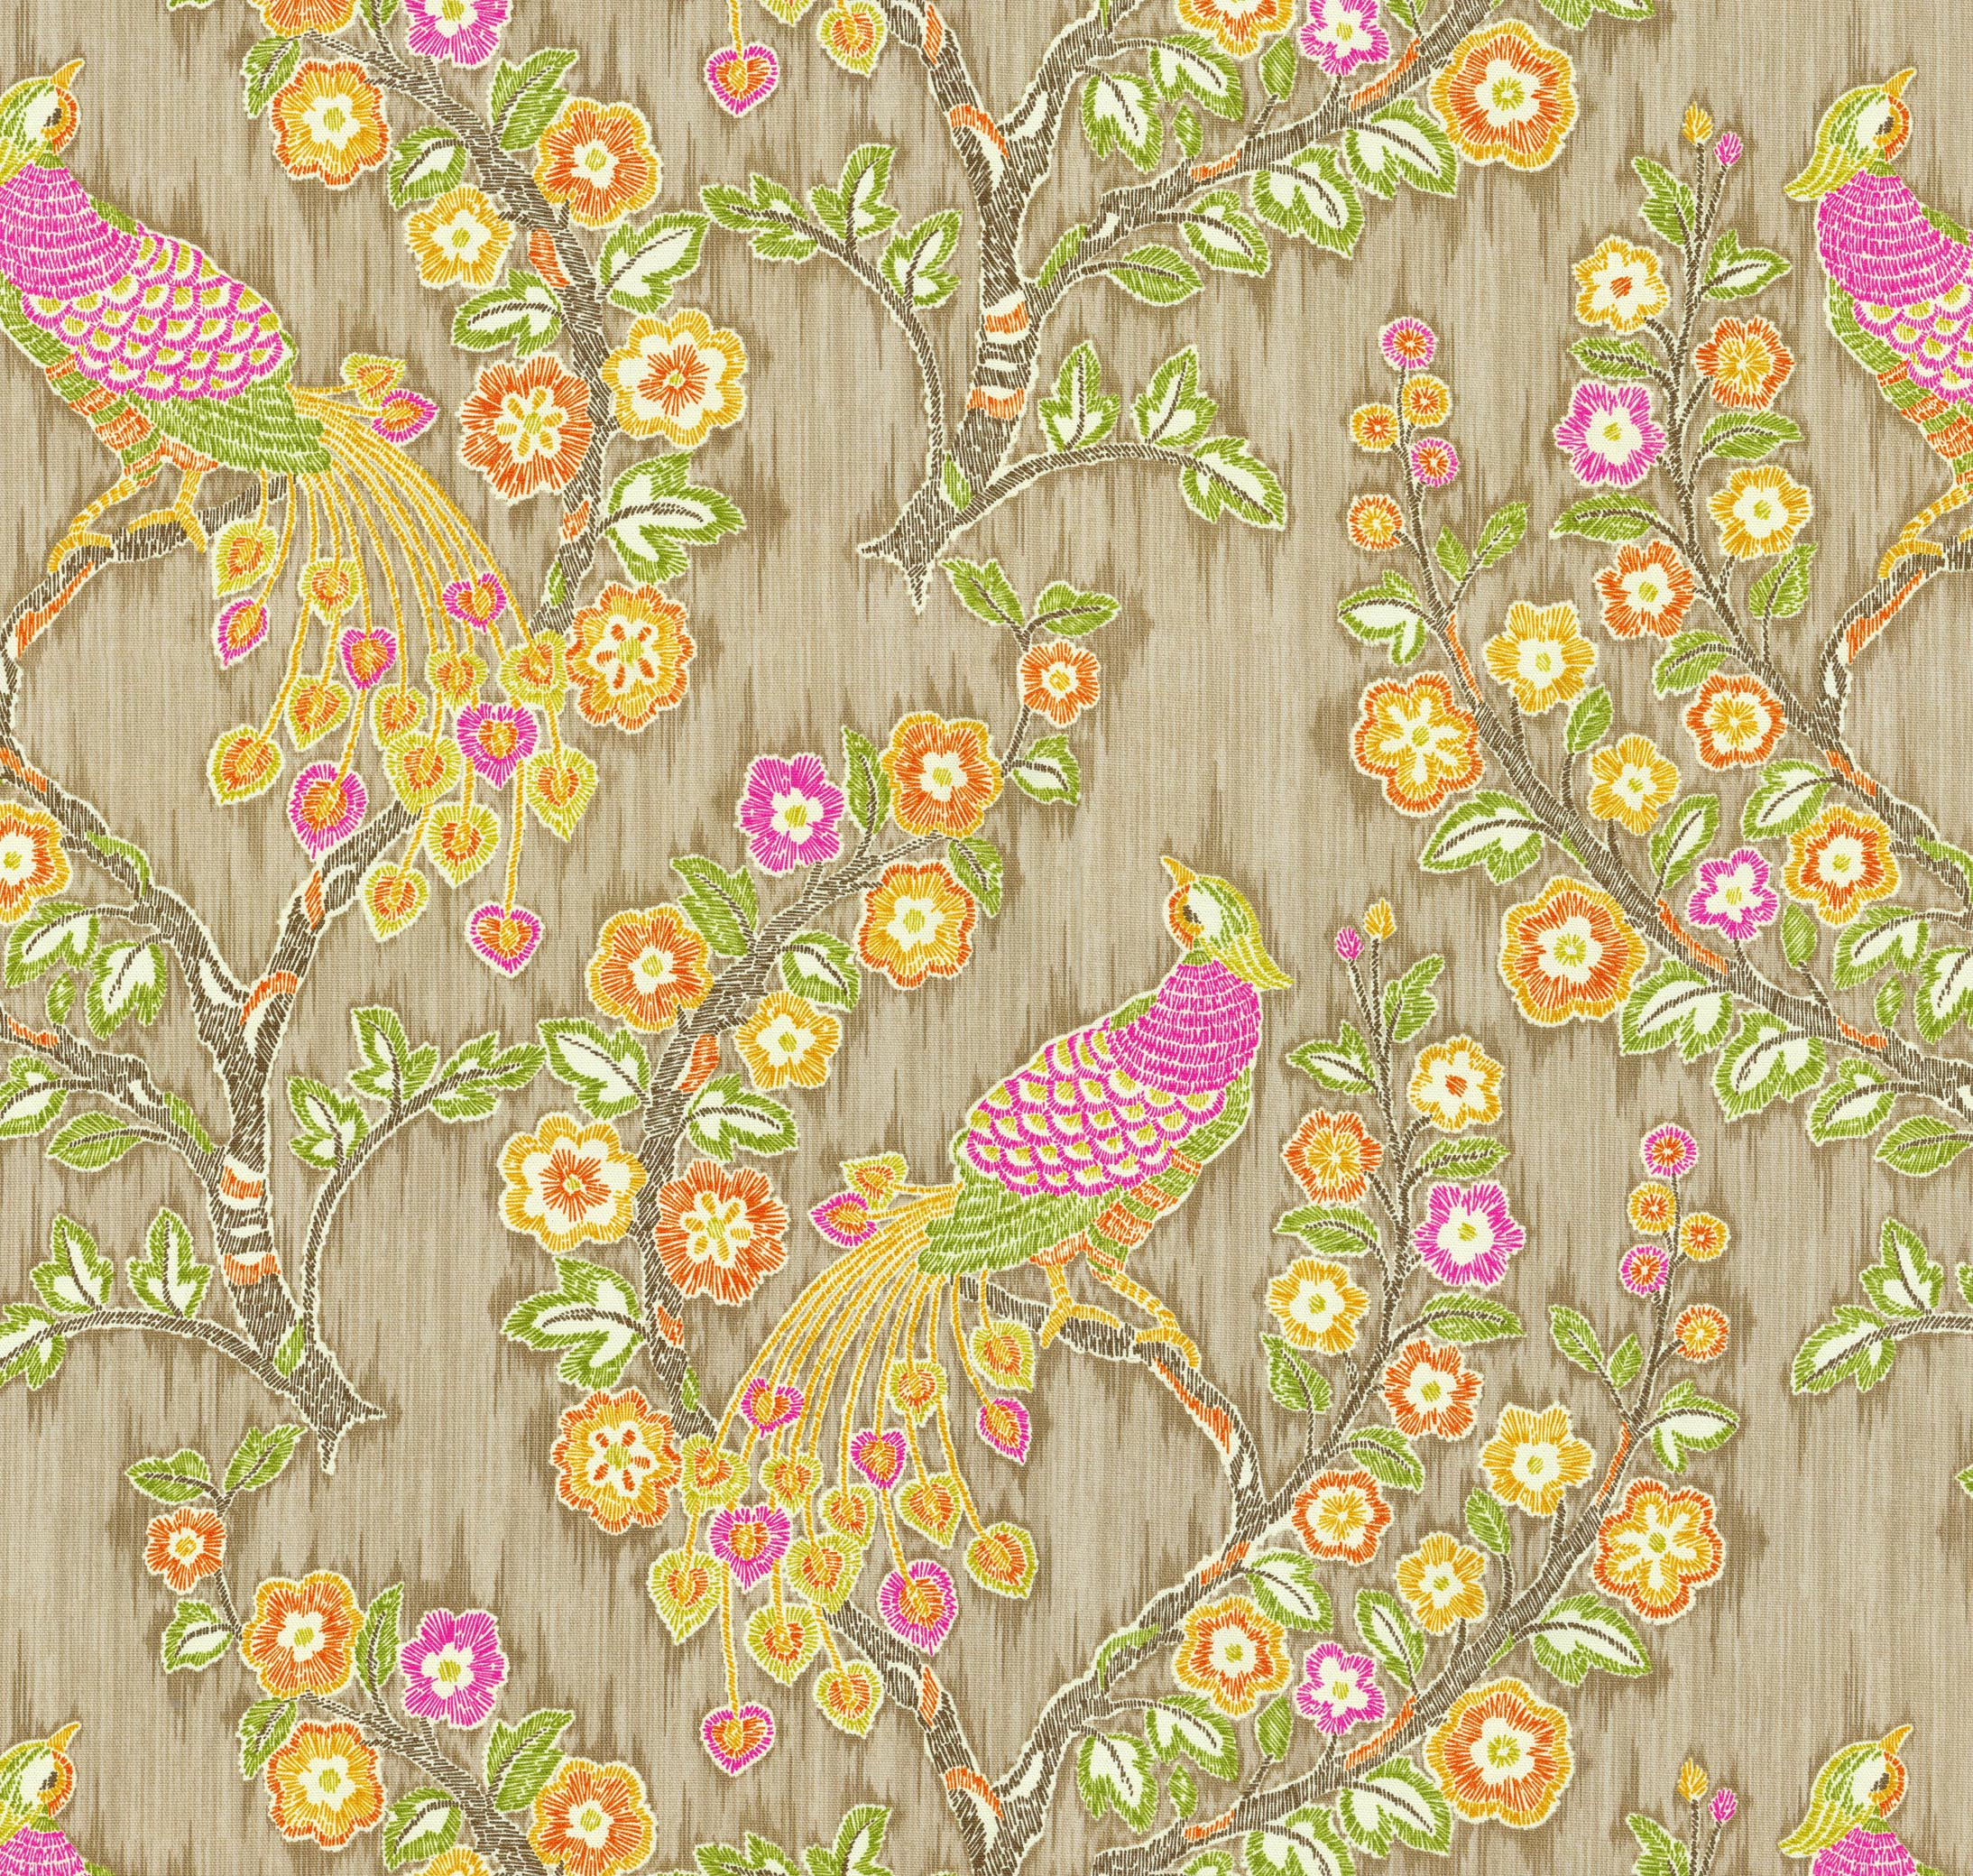 Home Decor 8\u0022x8\u0022 Fabric Swatch-IMAN Home Magic Garden Nectar